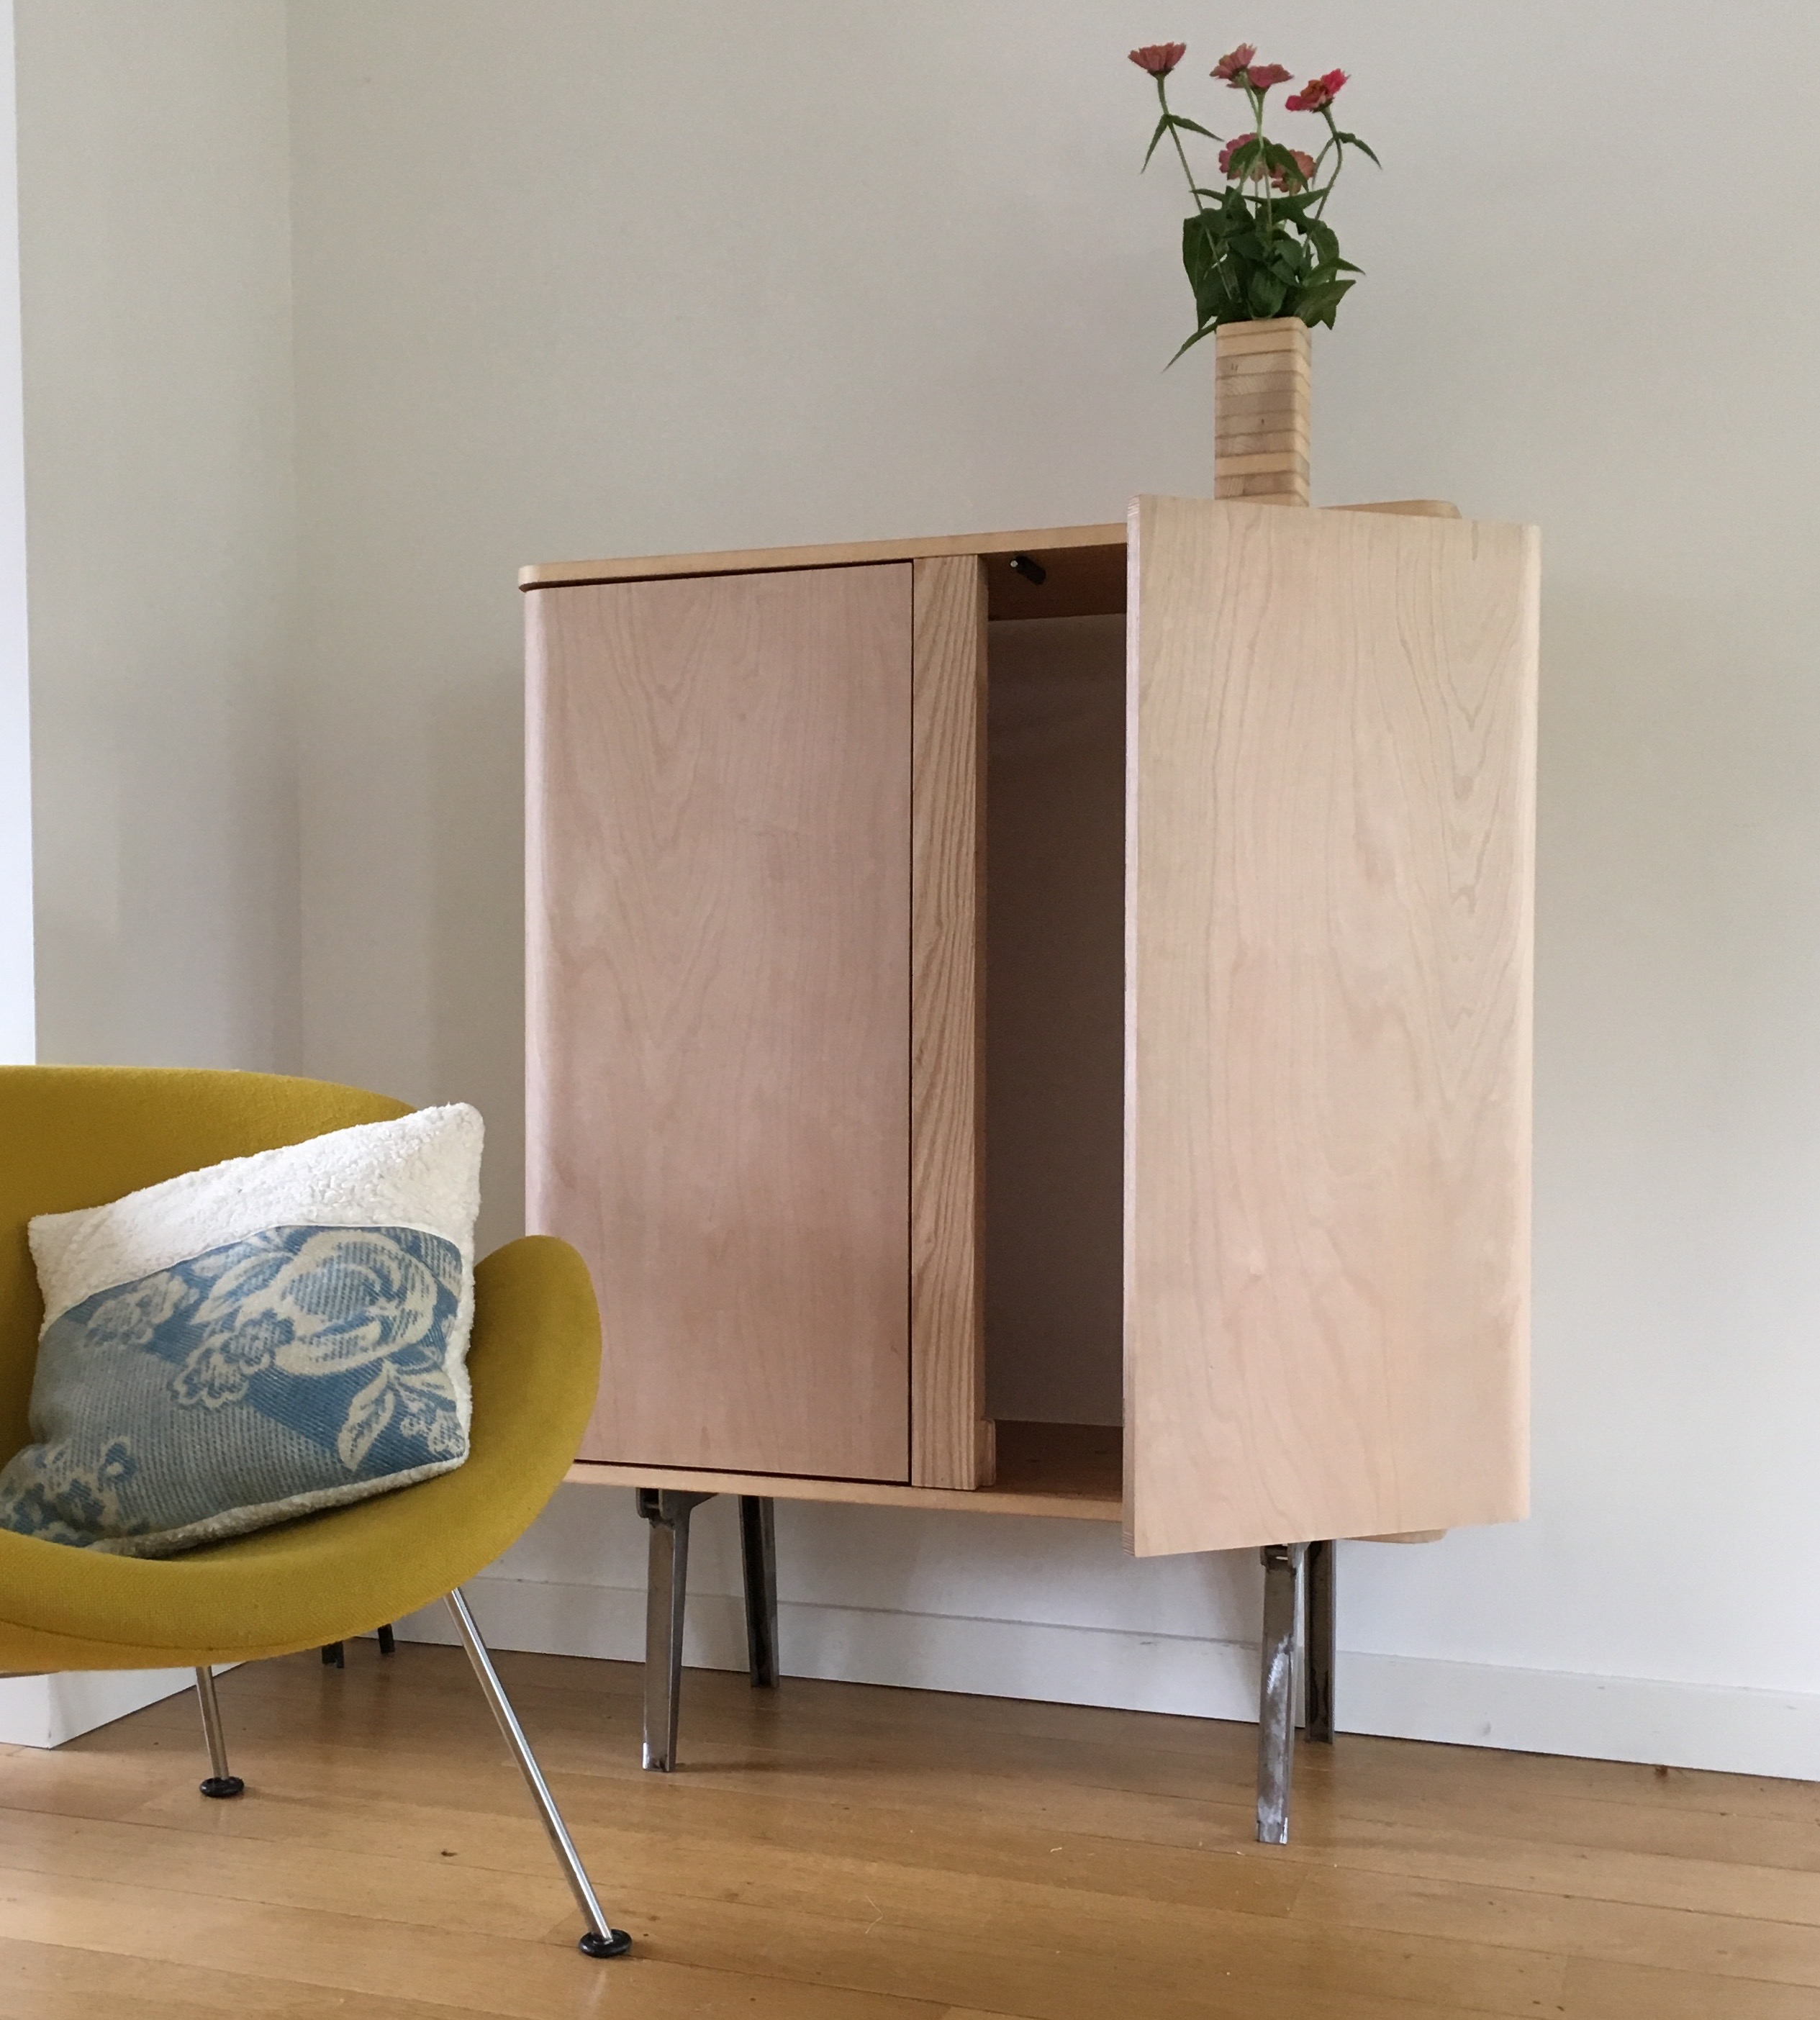 NEW: Cupboard Cabinet (photo's Show Prototype Version)